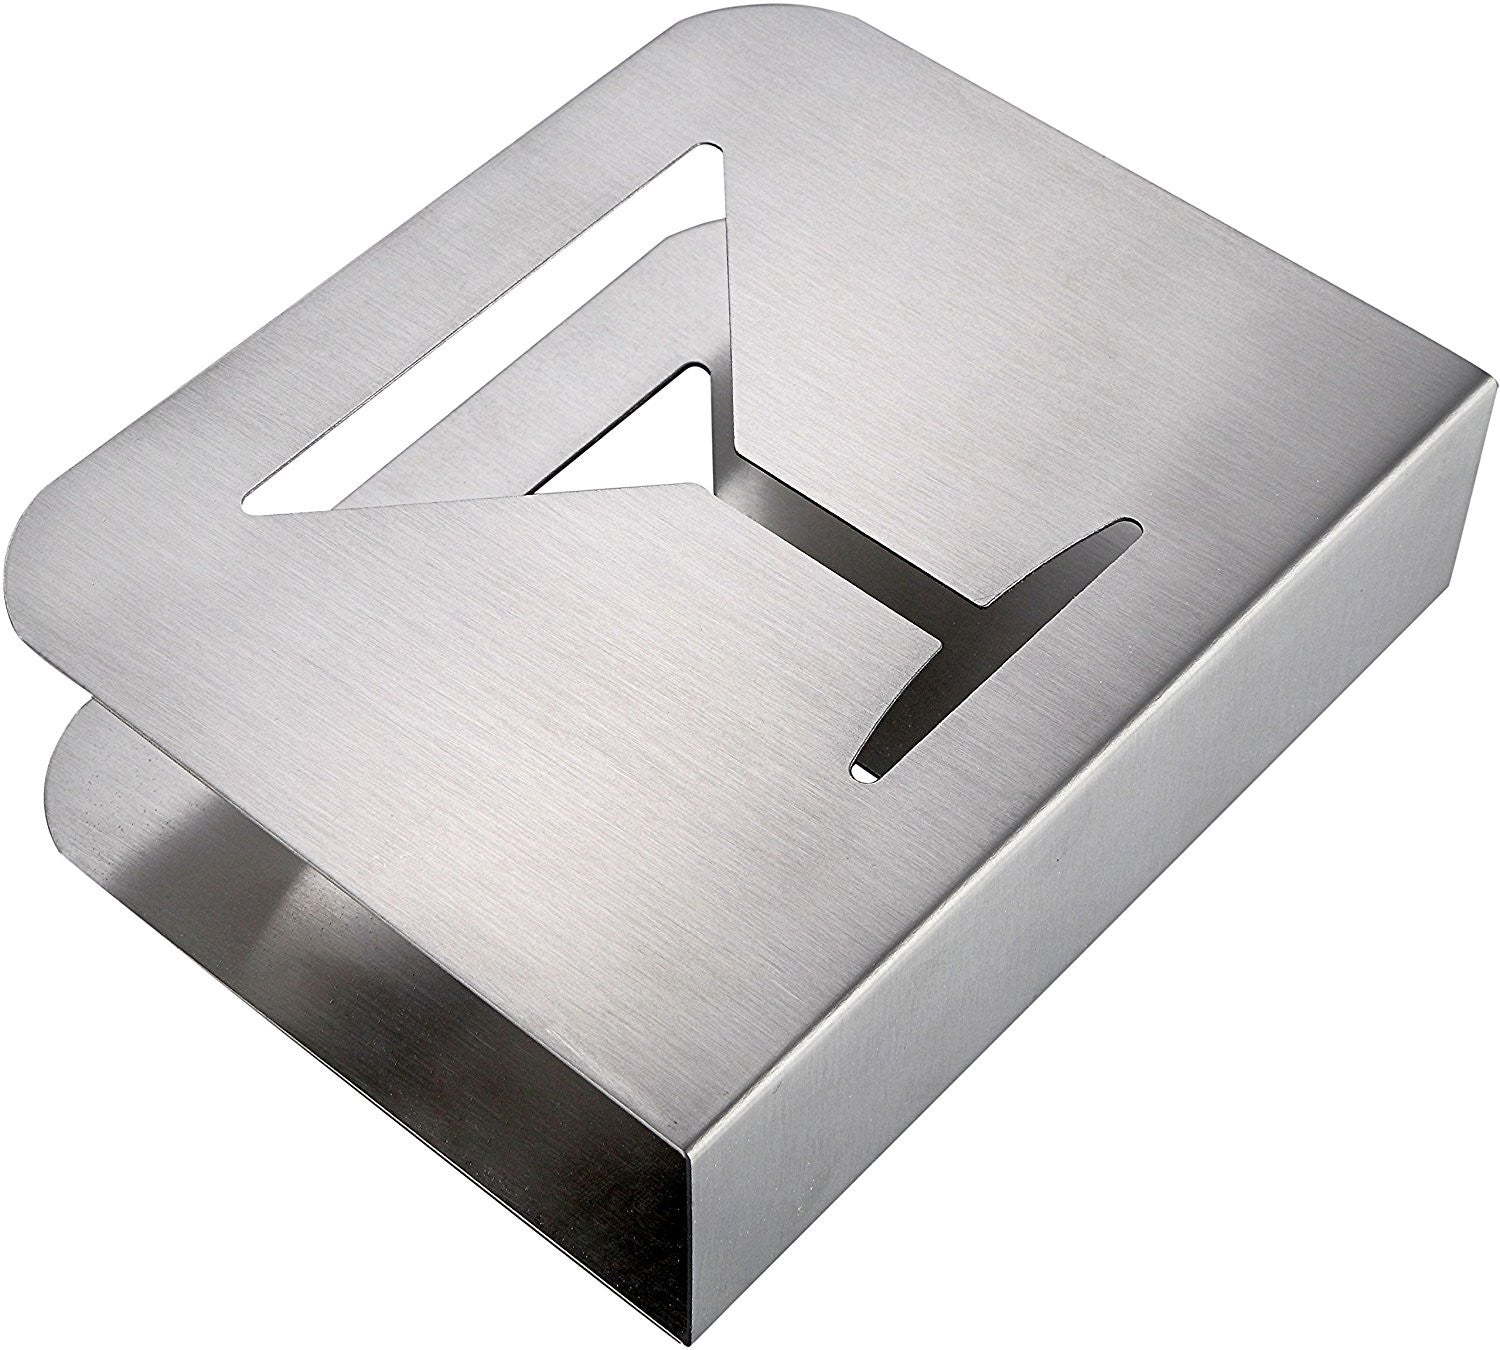 Square restaurant tables -  Stainless Steel Cocktail Napkin Holder Metal Square Serviette Dispenser With Fancy Cocktail Wine Glass Design For Home Bars And Restaurant Tables